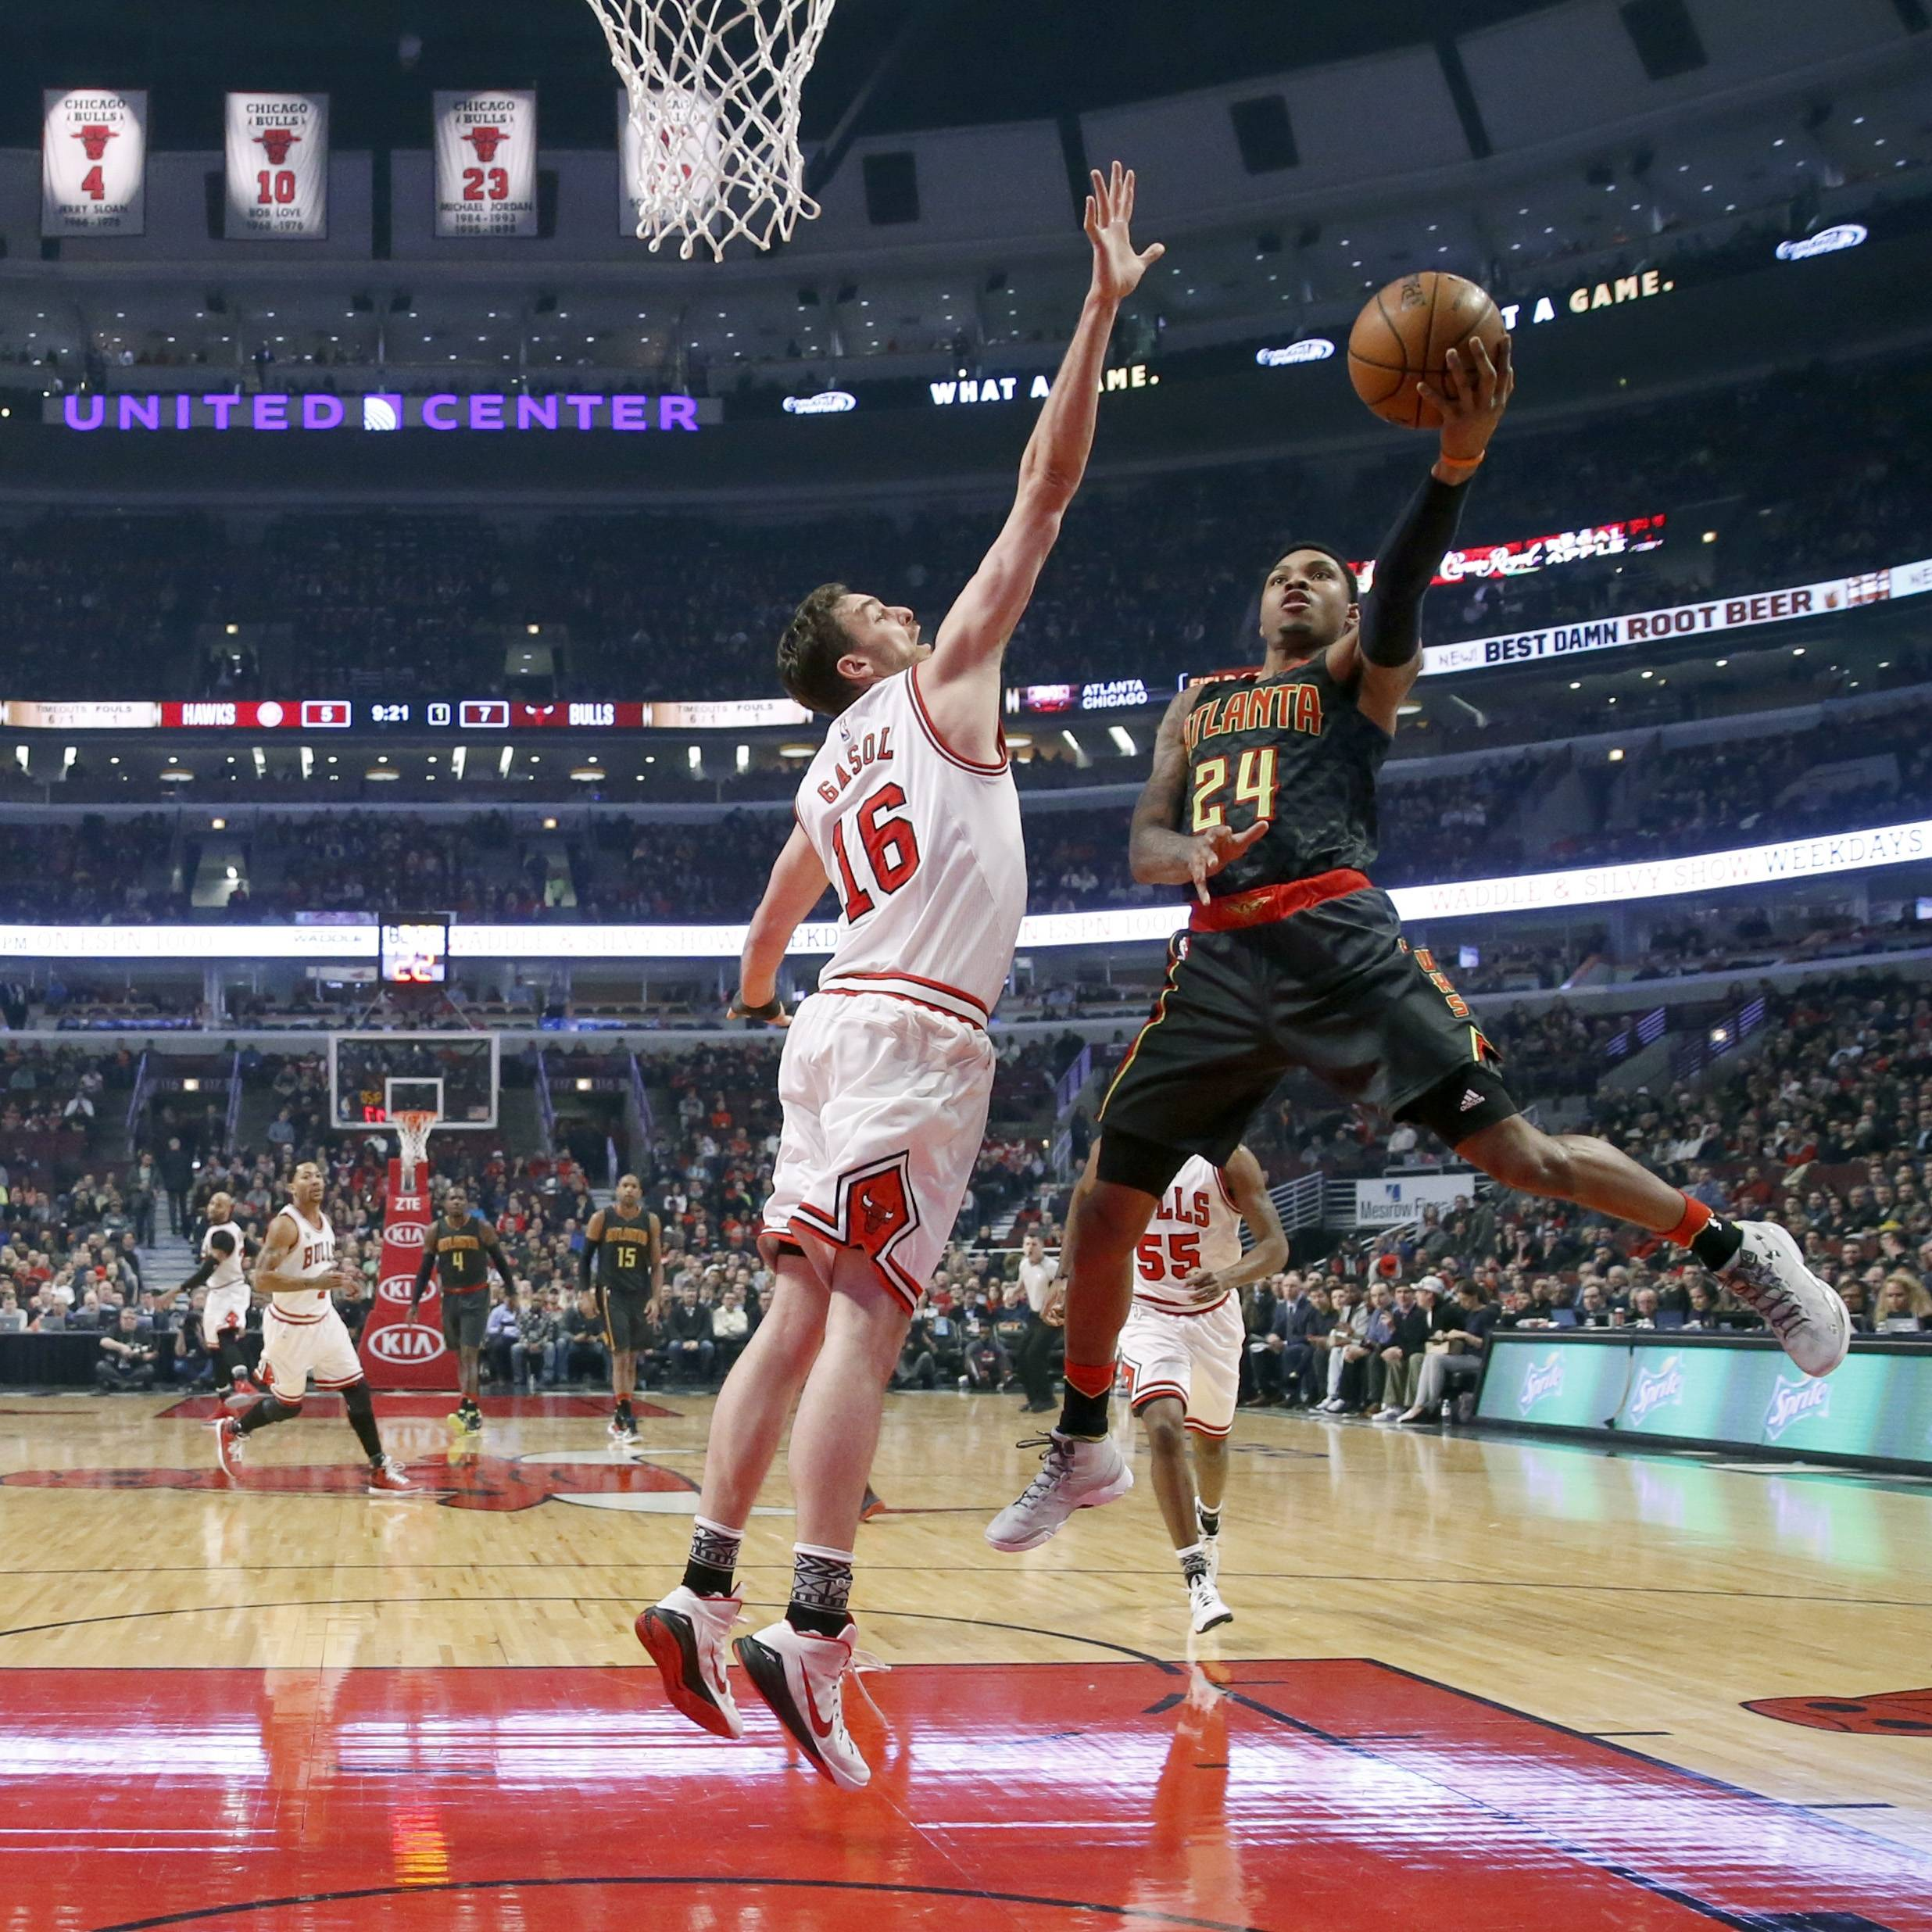 Chicago Bulls center Pau Gasol, going up to defend Atlanta Hawks forward Kent Bazemore on Wednesday night, said he is proud and honored to be going to the NBA All-Star Game as teammate Jimmy Butler's replacement.